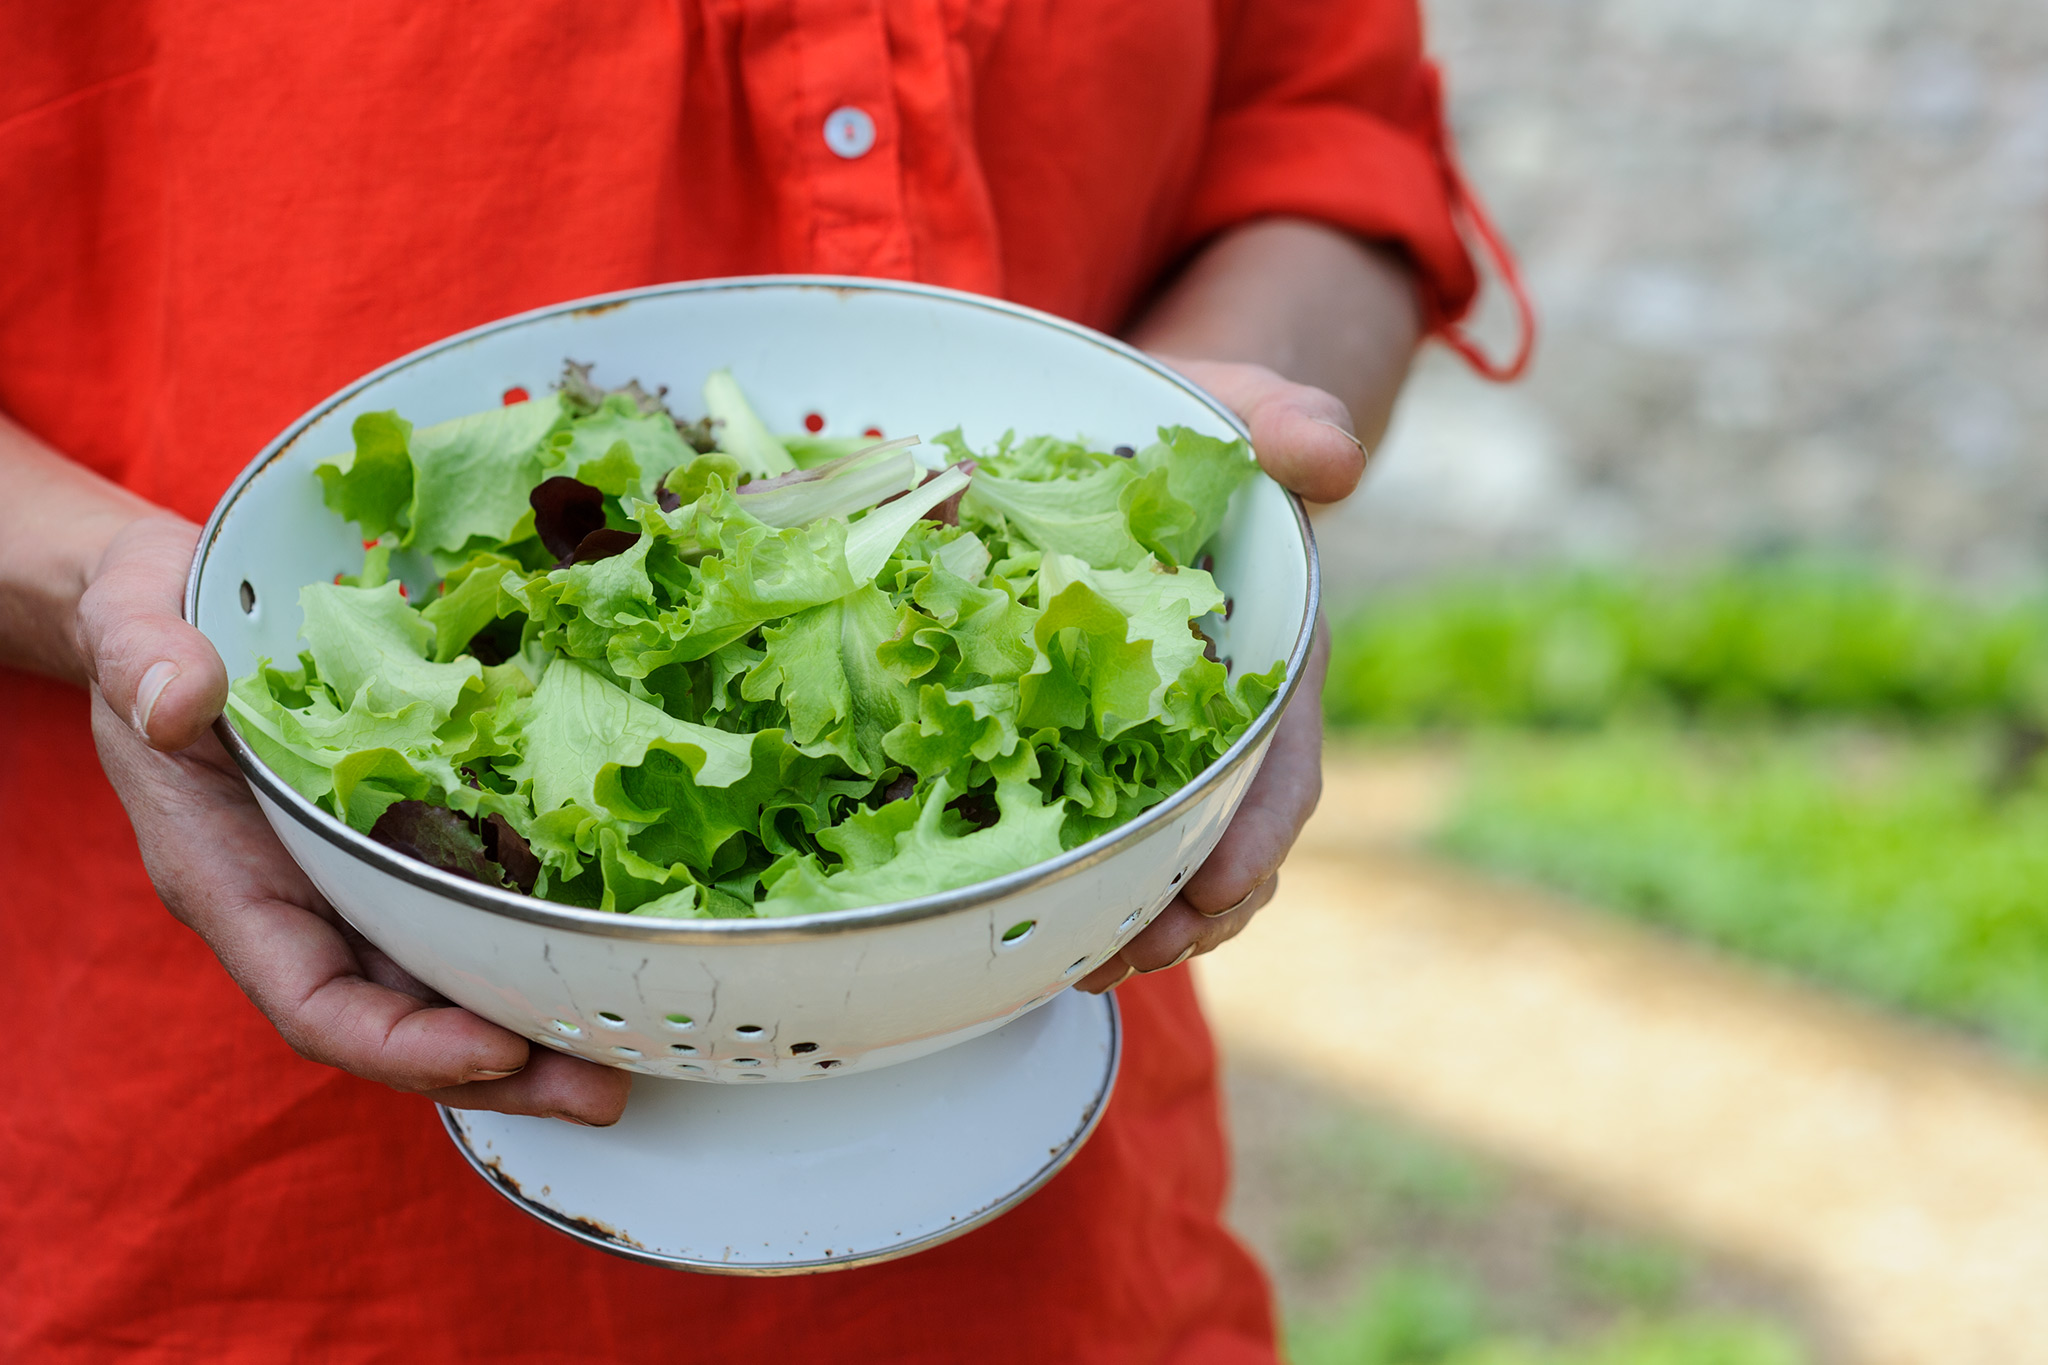 Freshly harvested salad leaves